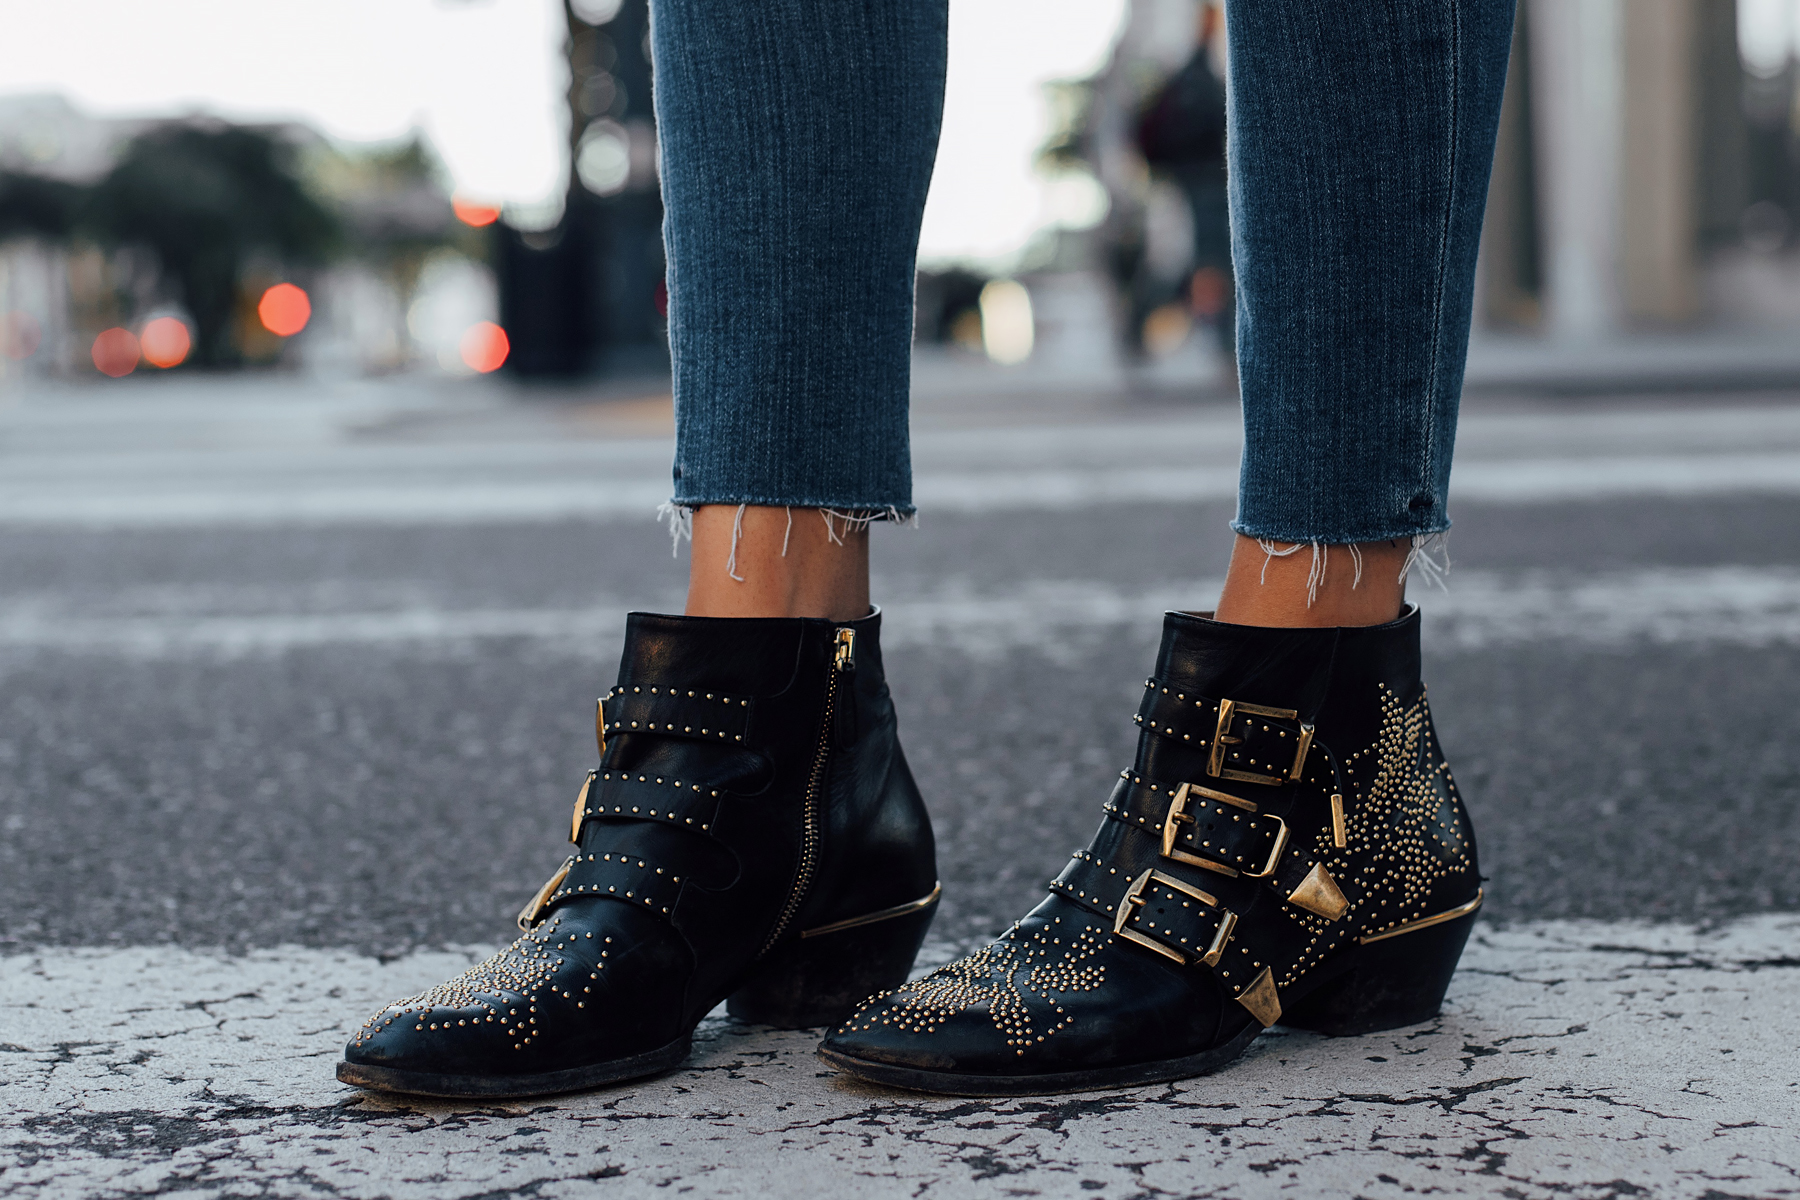 Woman Wearing Chloe Susanna Black Booties Fashion Jackson San Diego Fashion Blogger Street Style